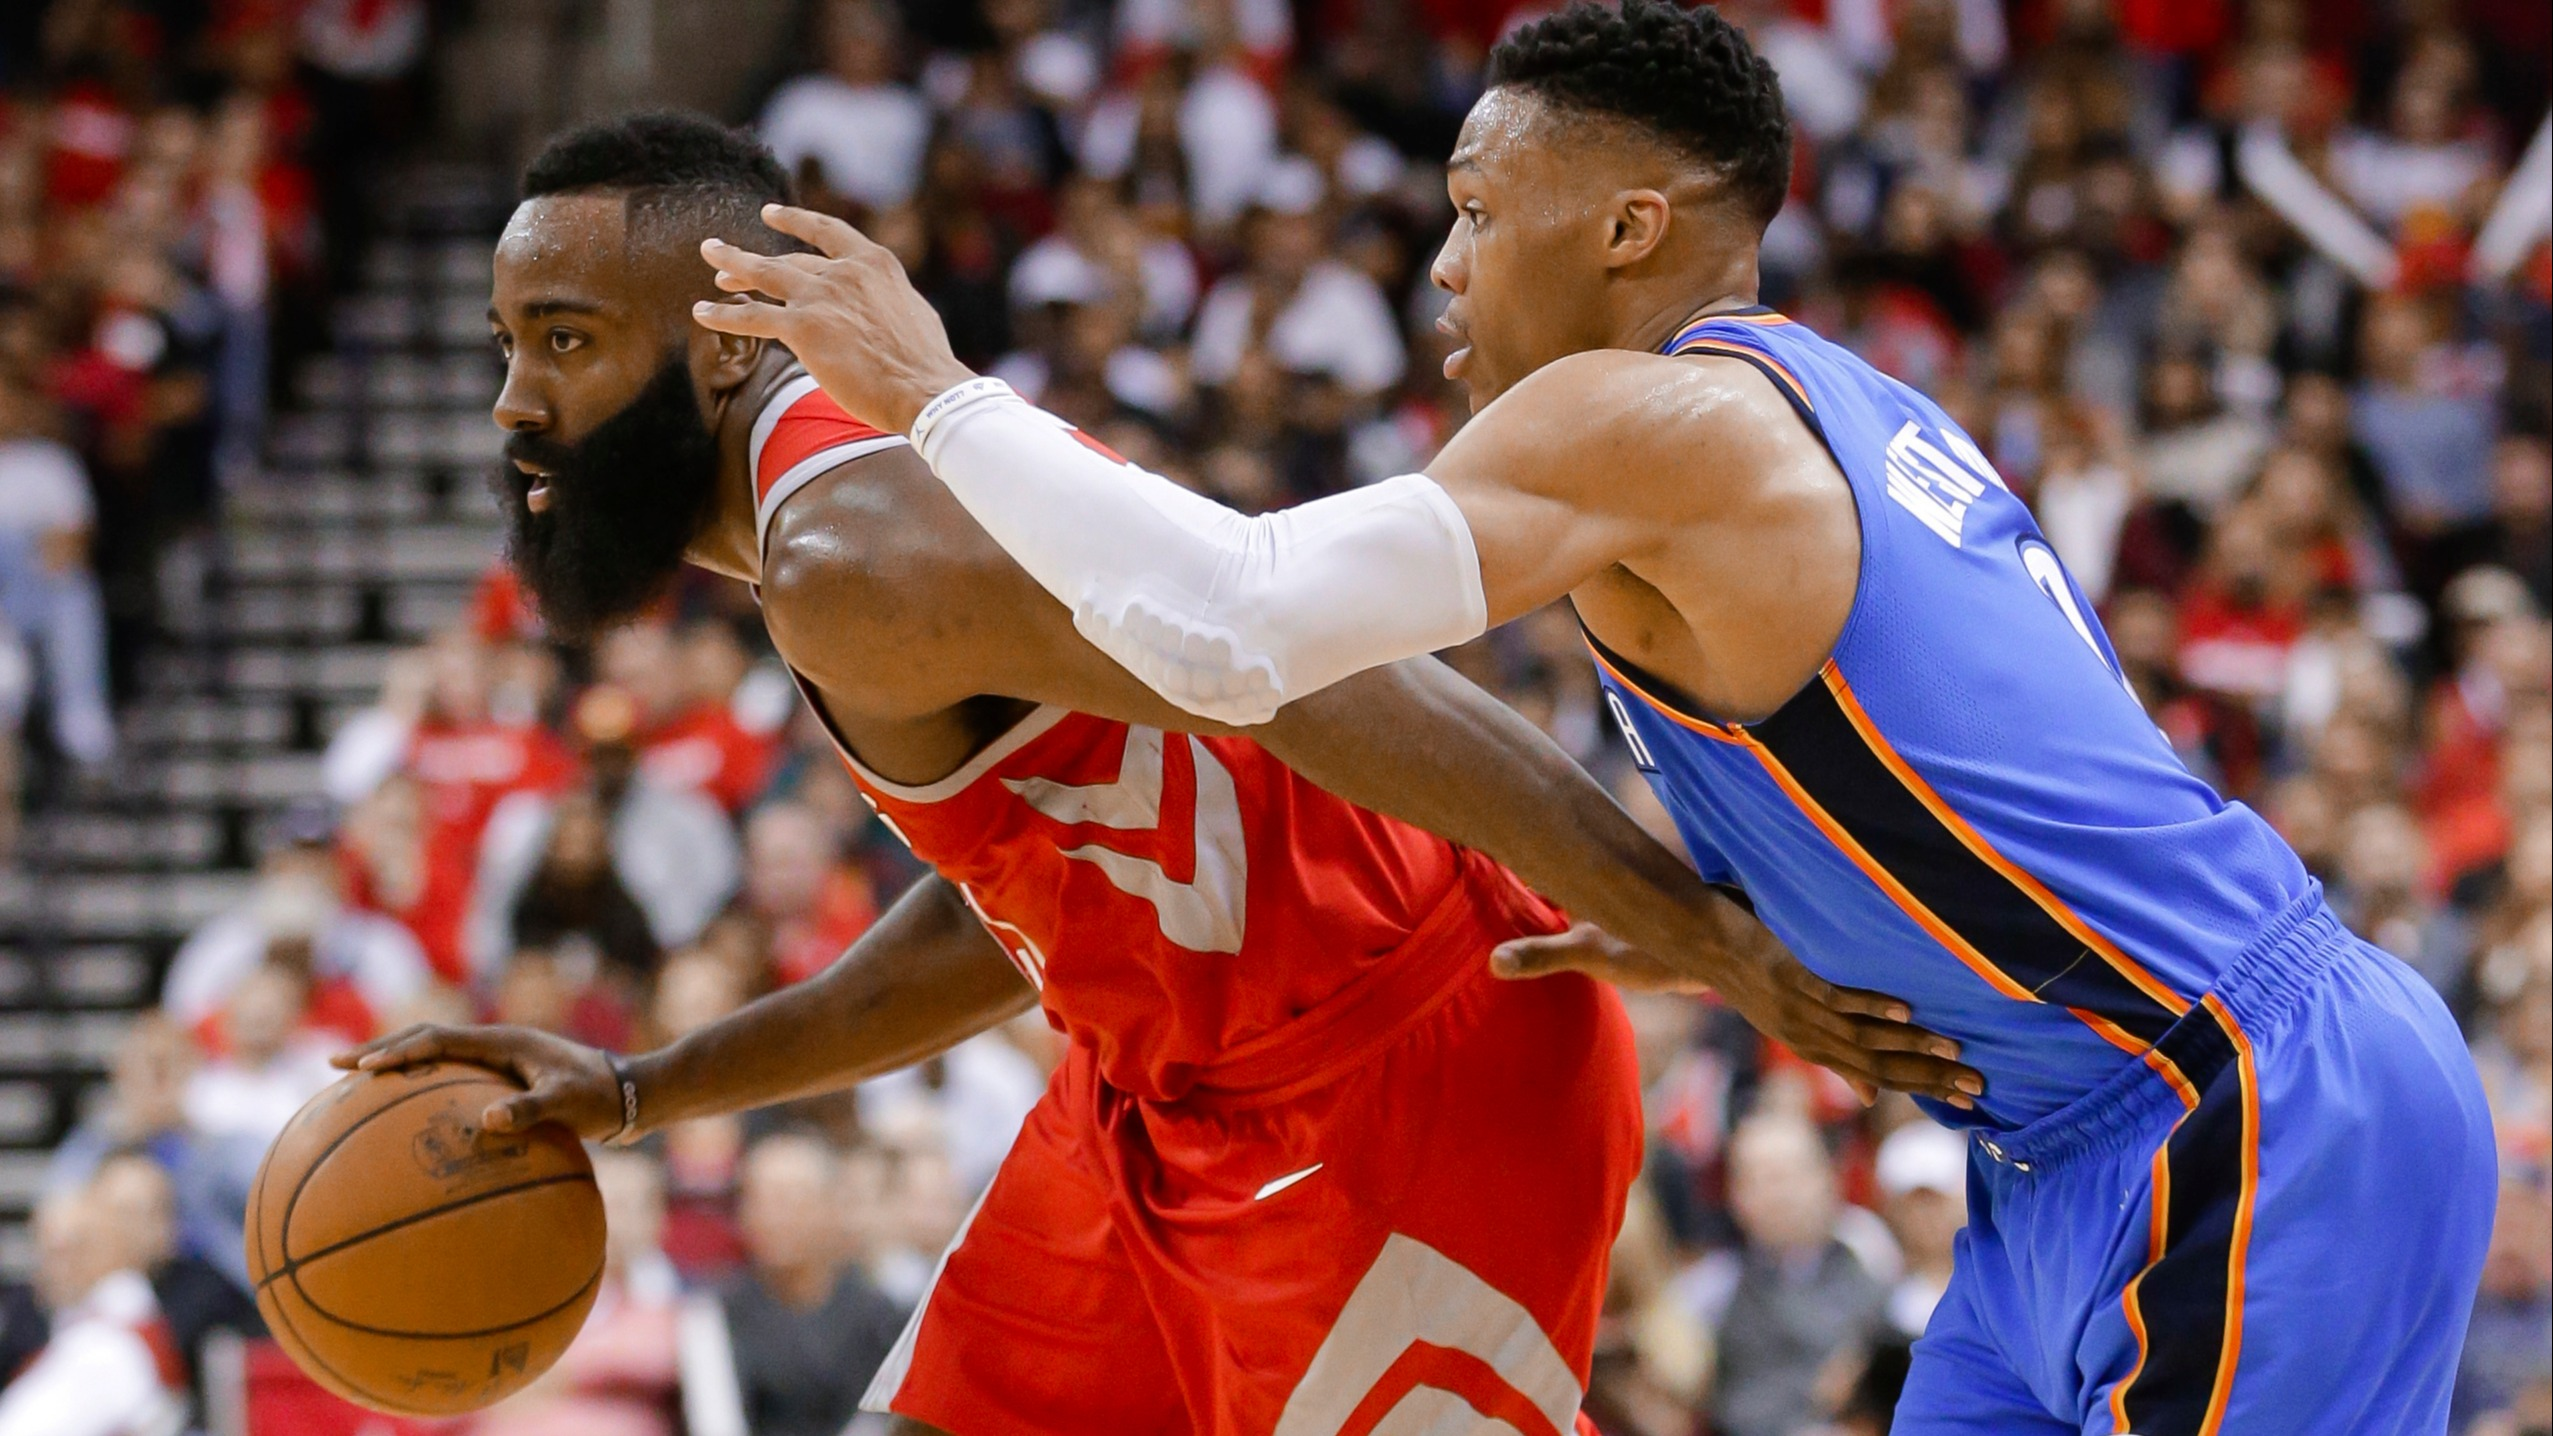 961c28c2e0f1 James Harden has scored 30 points in 28 straight games for the surging Houston  Rockets. But Russell Westbrook s eight straight triple-doubles spell hope  for ...